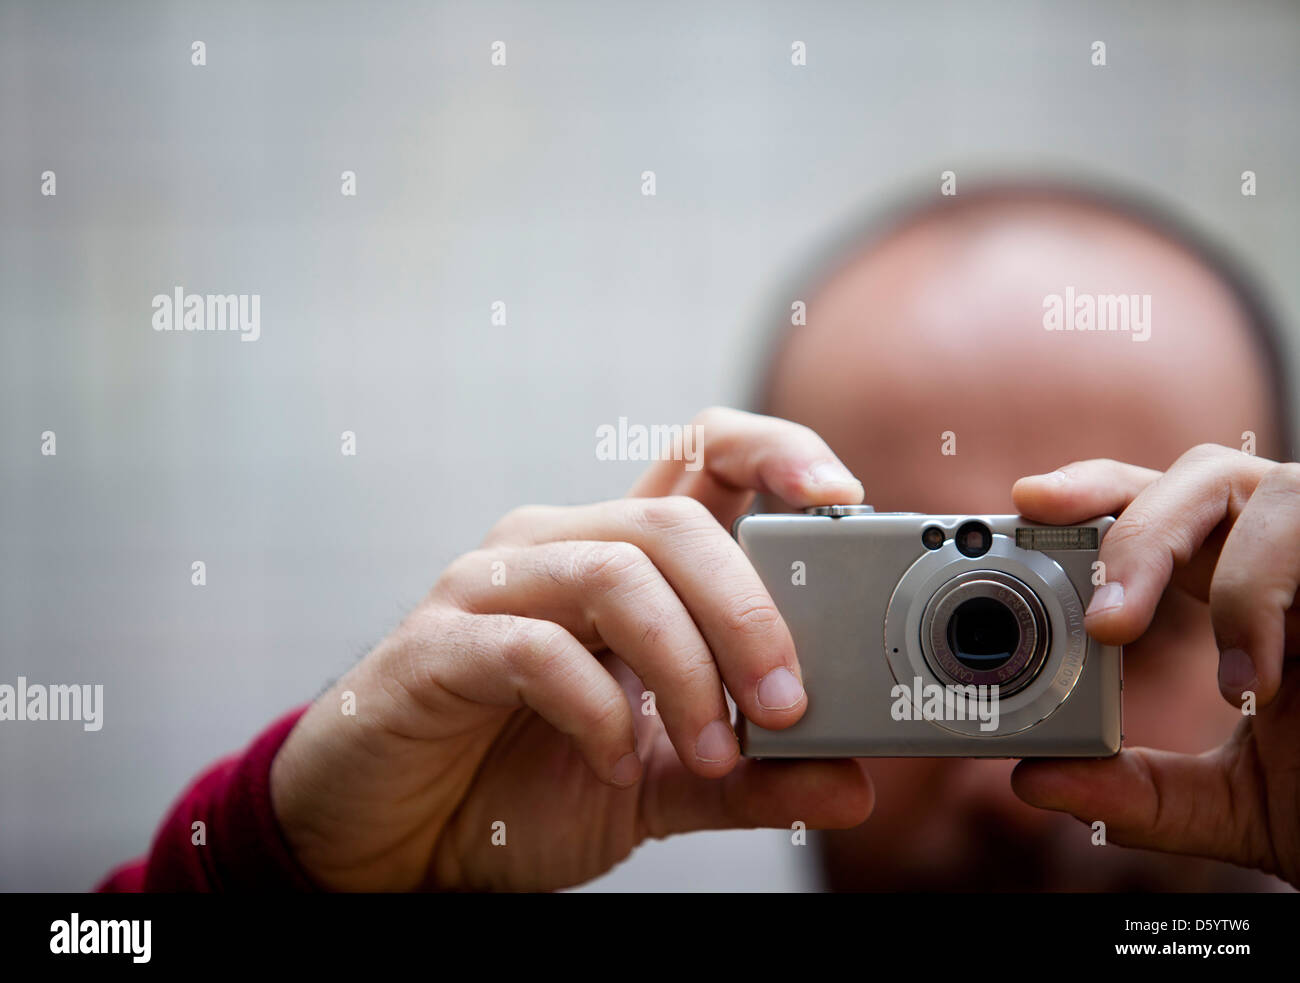 Man Taking a Photograph, Close-up View Stock Photo